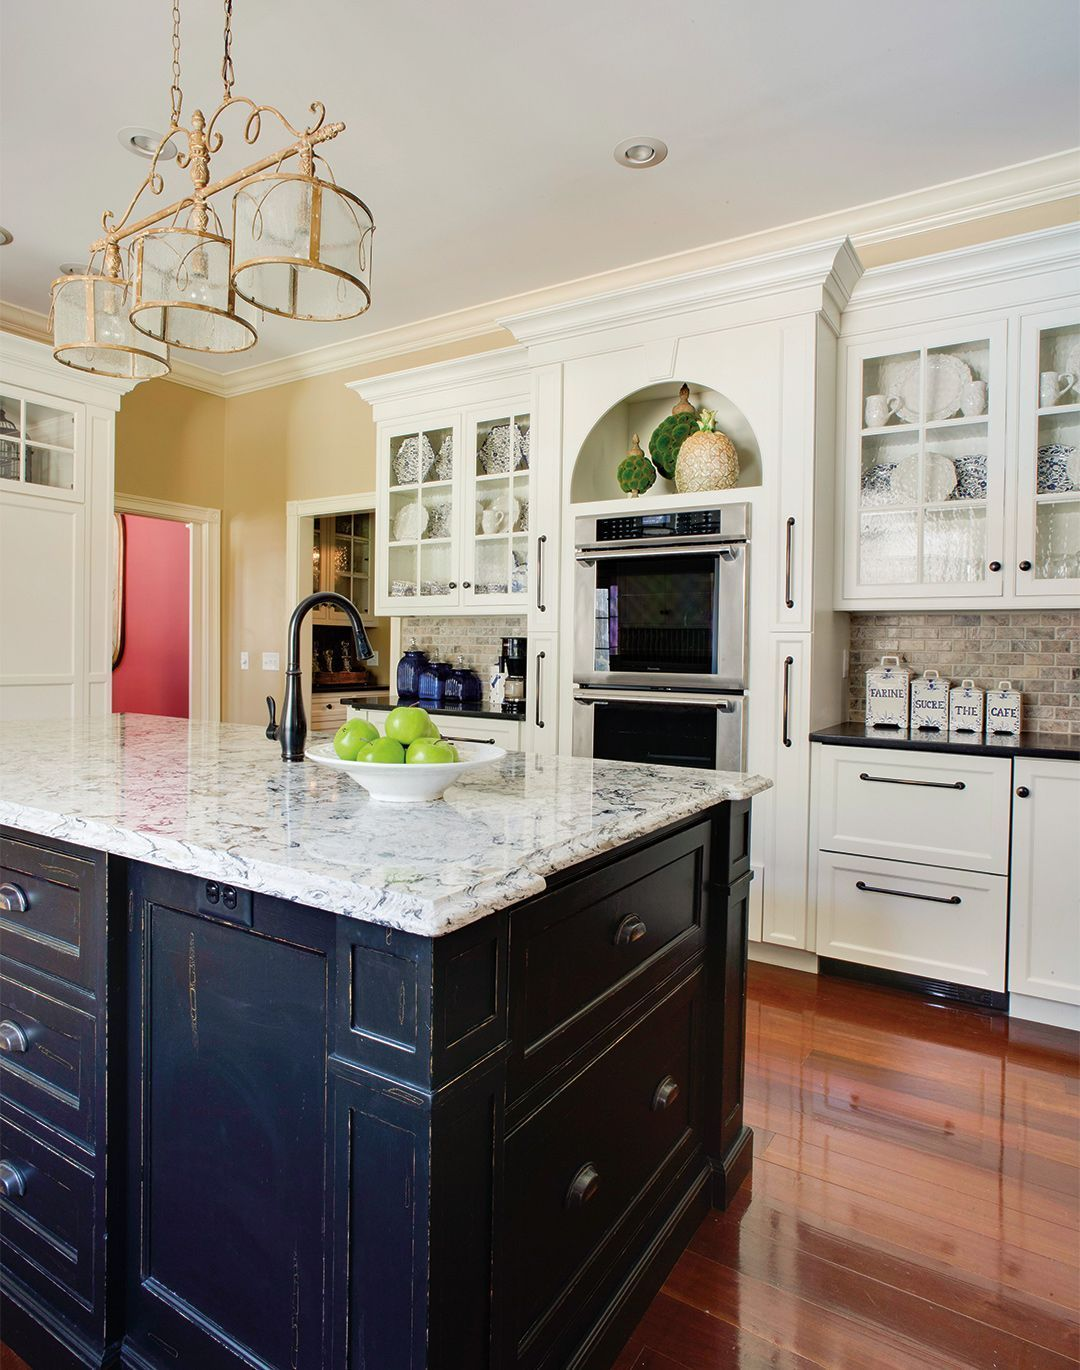 Kitchen Cabinetry With Rustic Elegance Plain Fancy Cabinetry